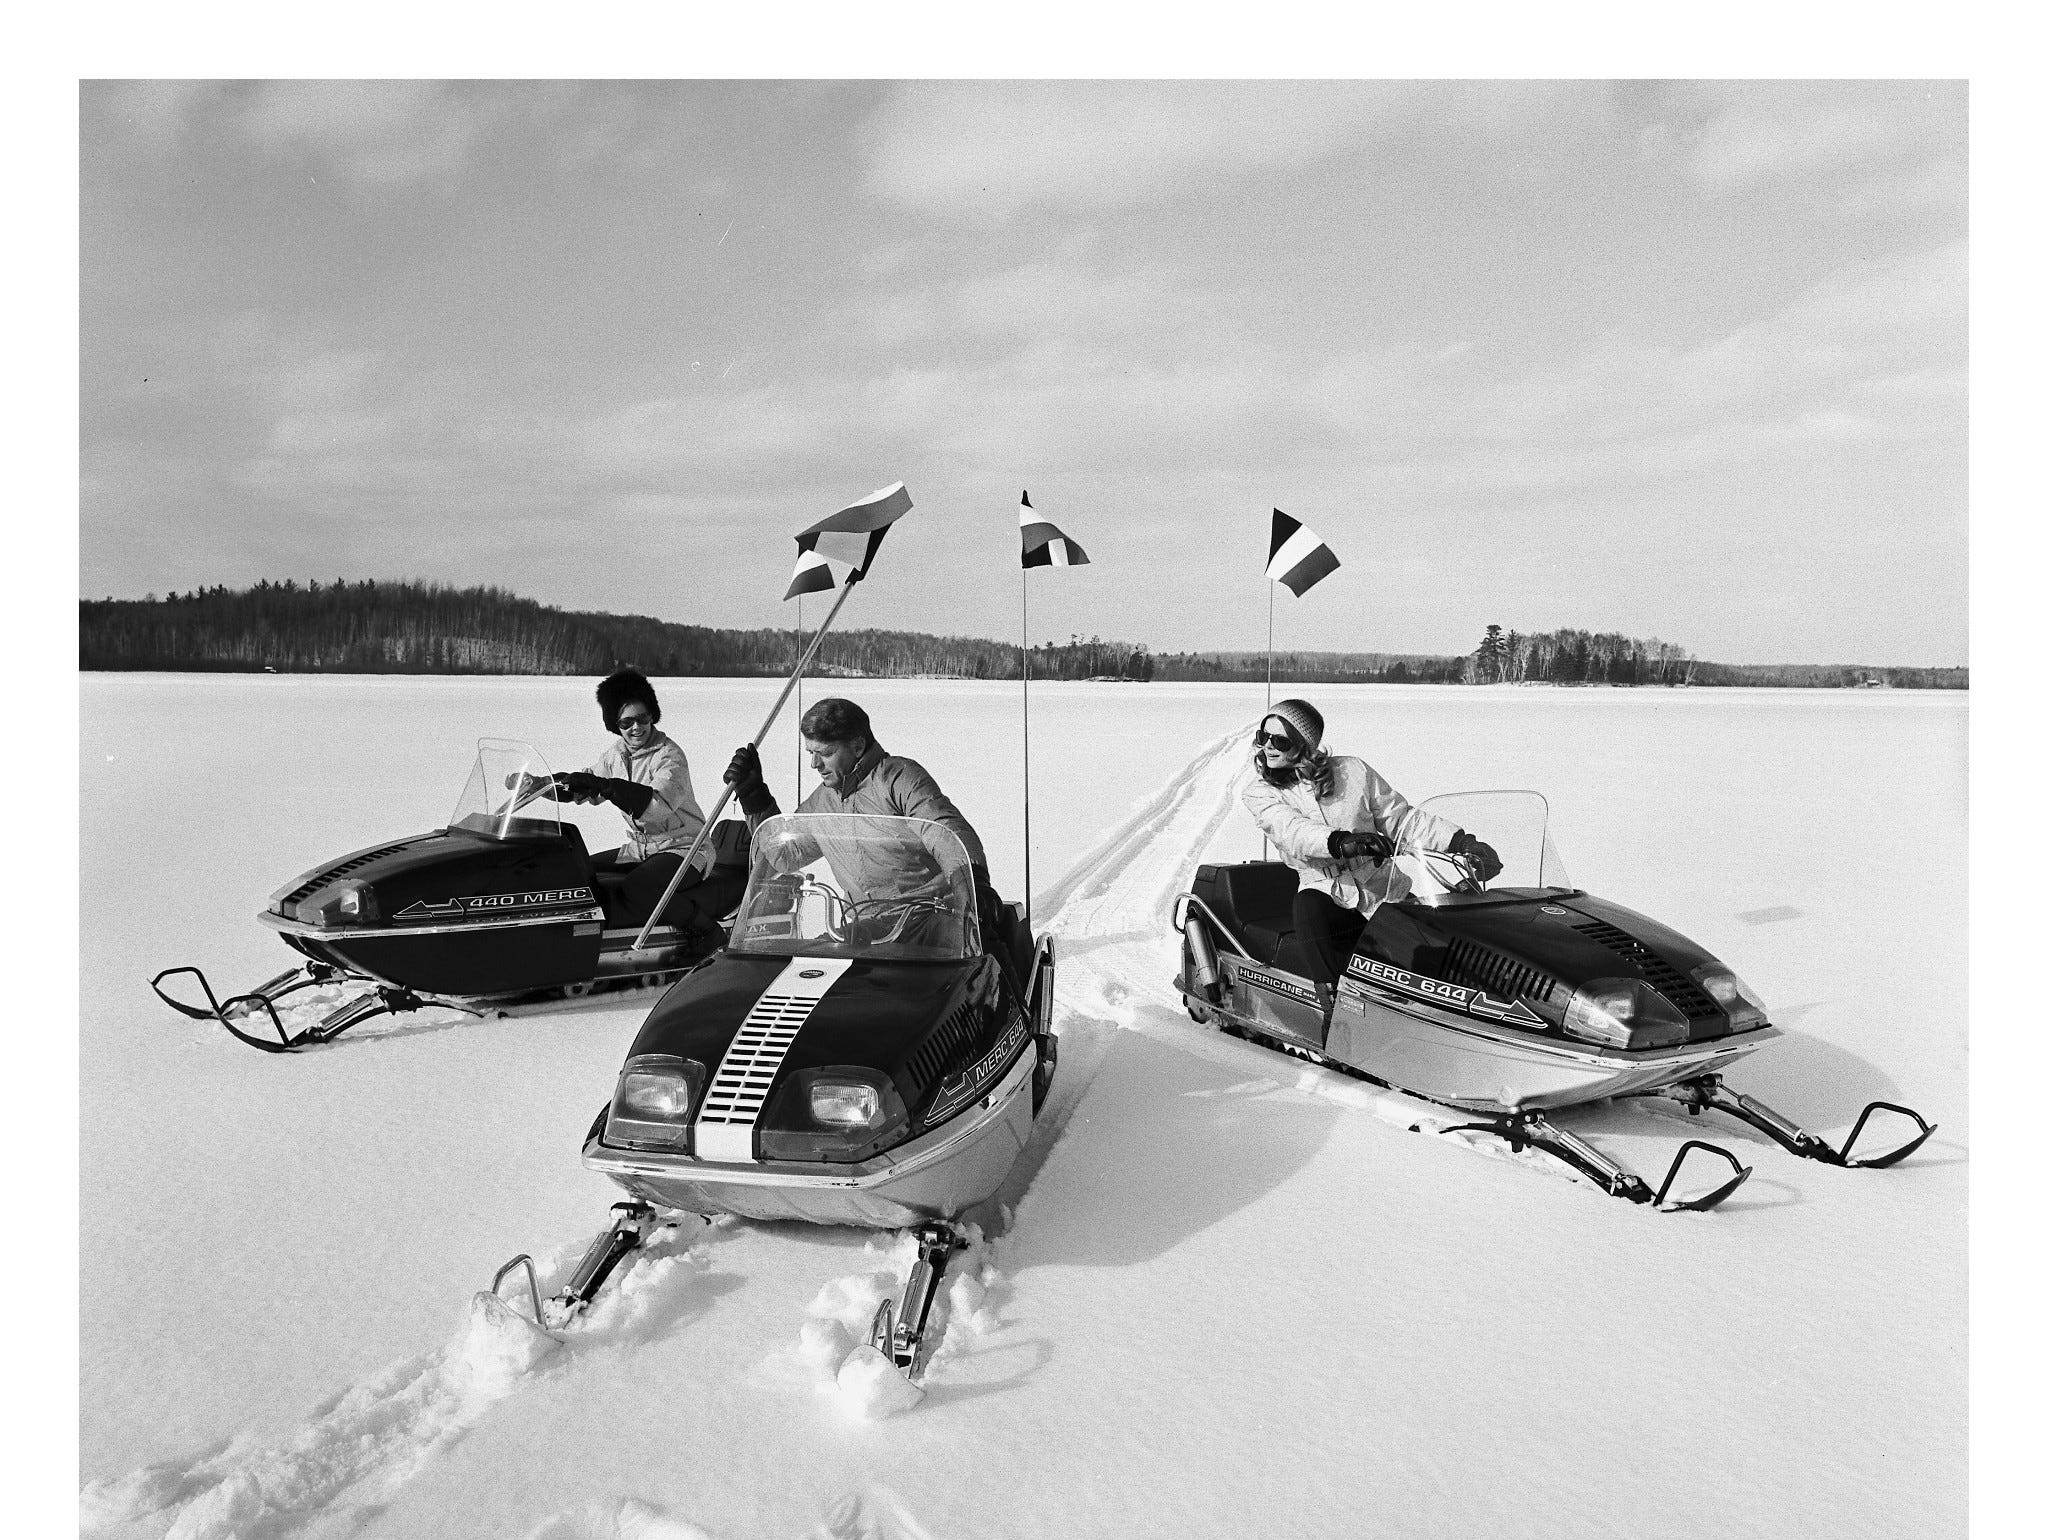 In the late 1960s, Mercury Marine produced snowmobiles, as pictured.